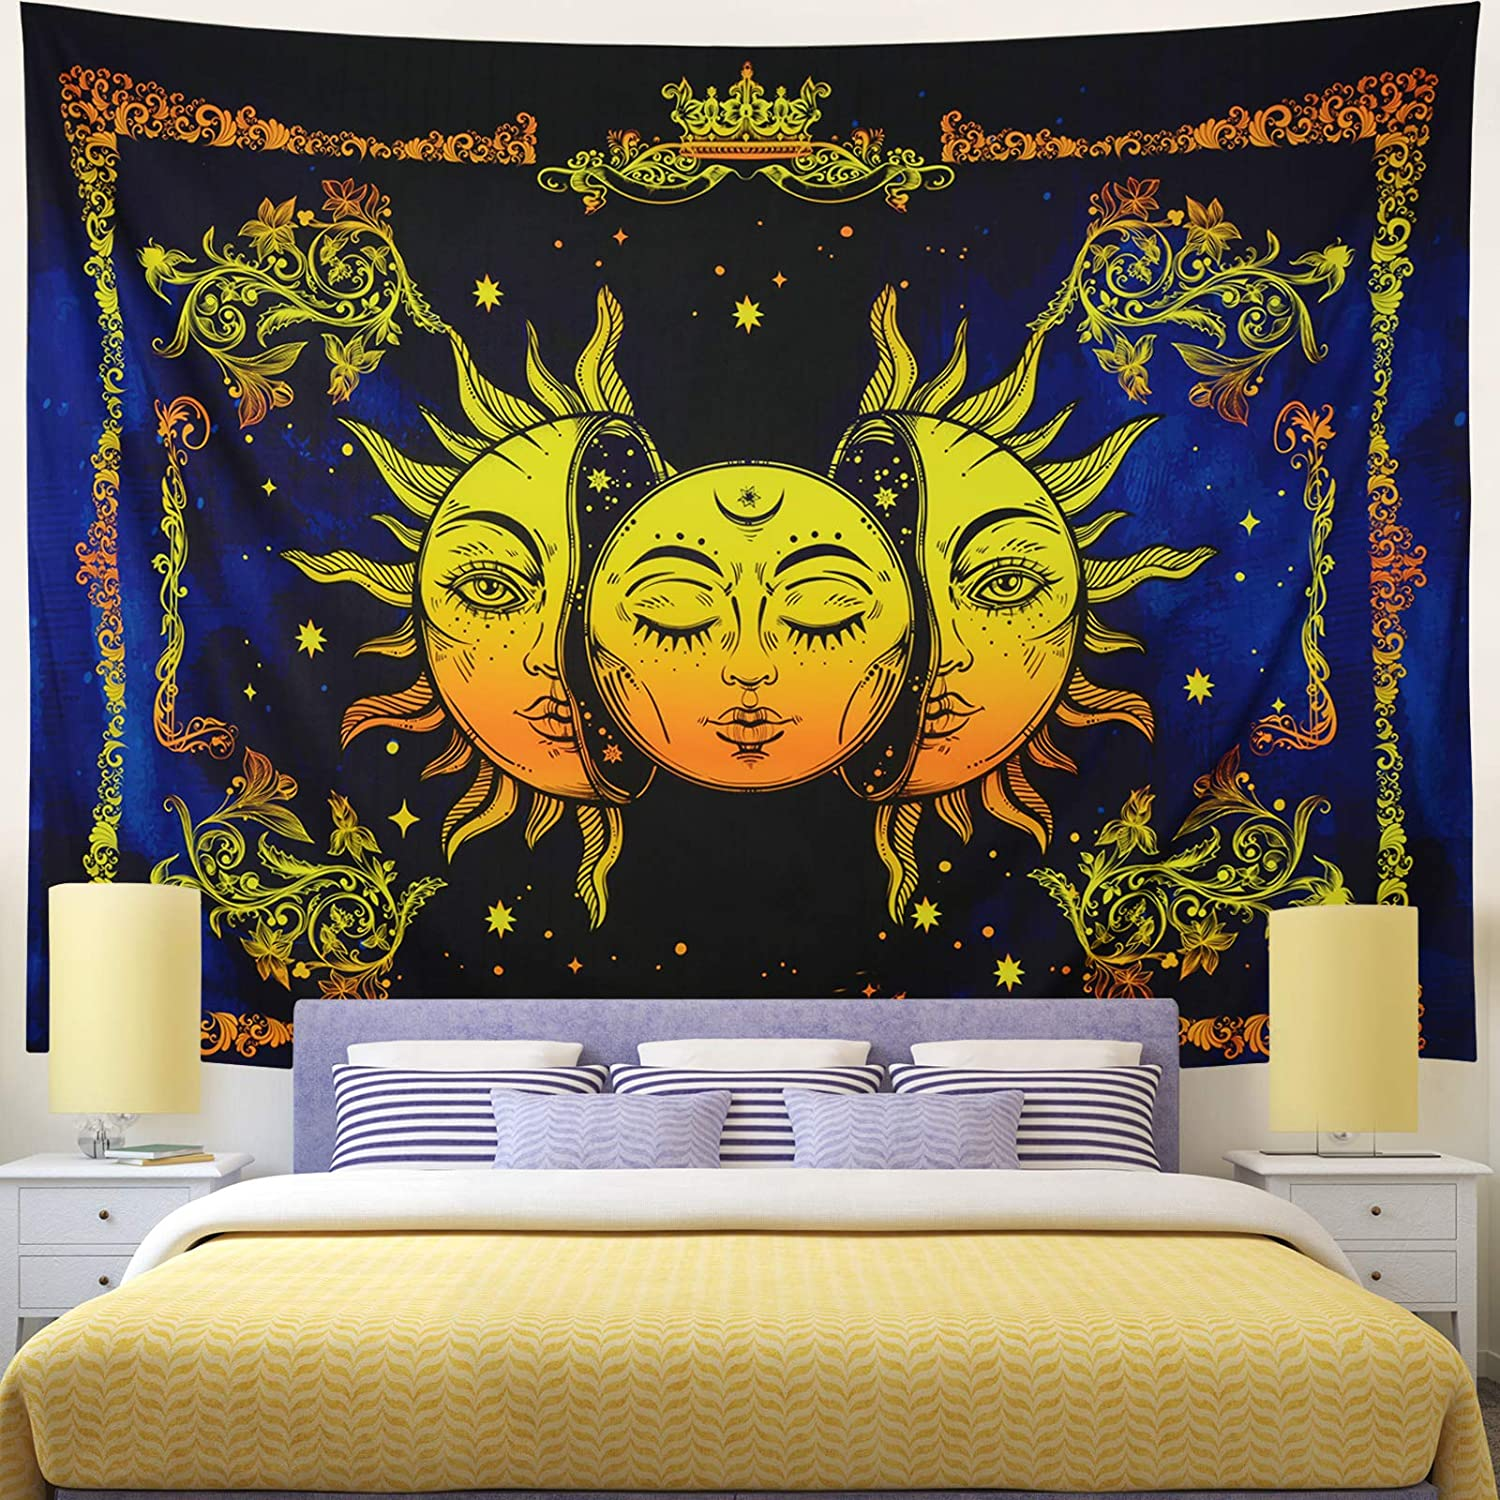 Rajahubri Sun and Moon Tapestry Psychedelic Celestial Wall Tapestry Burning Sun with Star Tapestry Mystic Fractal Faces Tapestry Wall Hanging for Room(H59.1×W78.7)